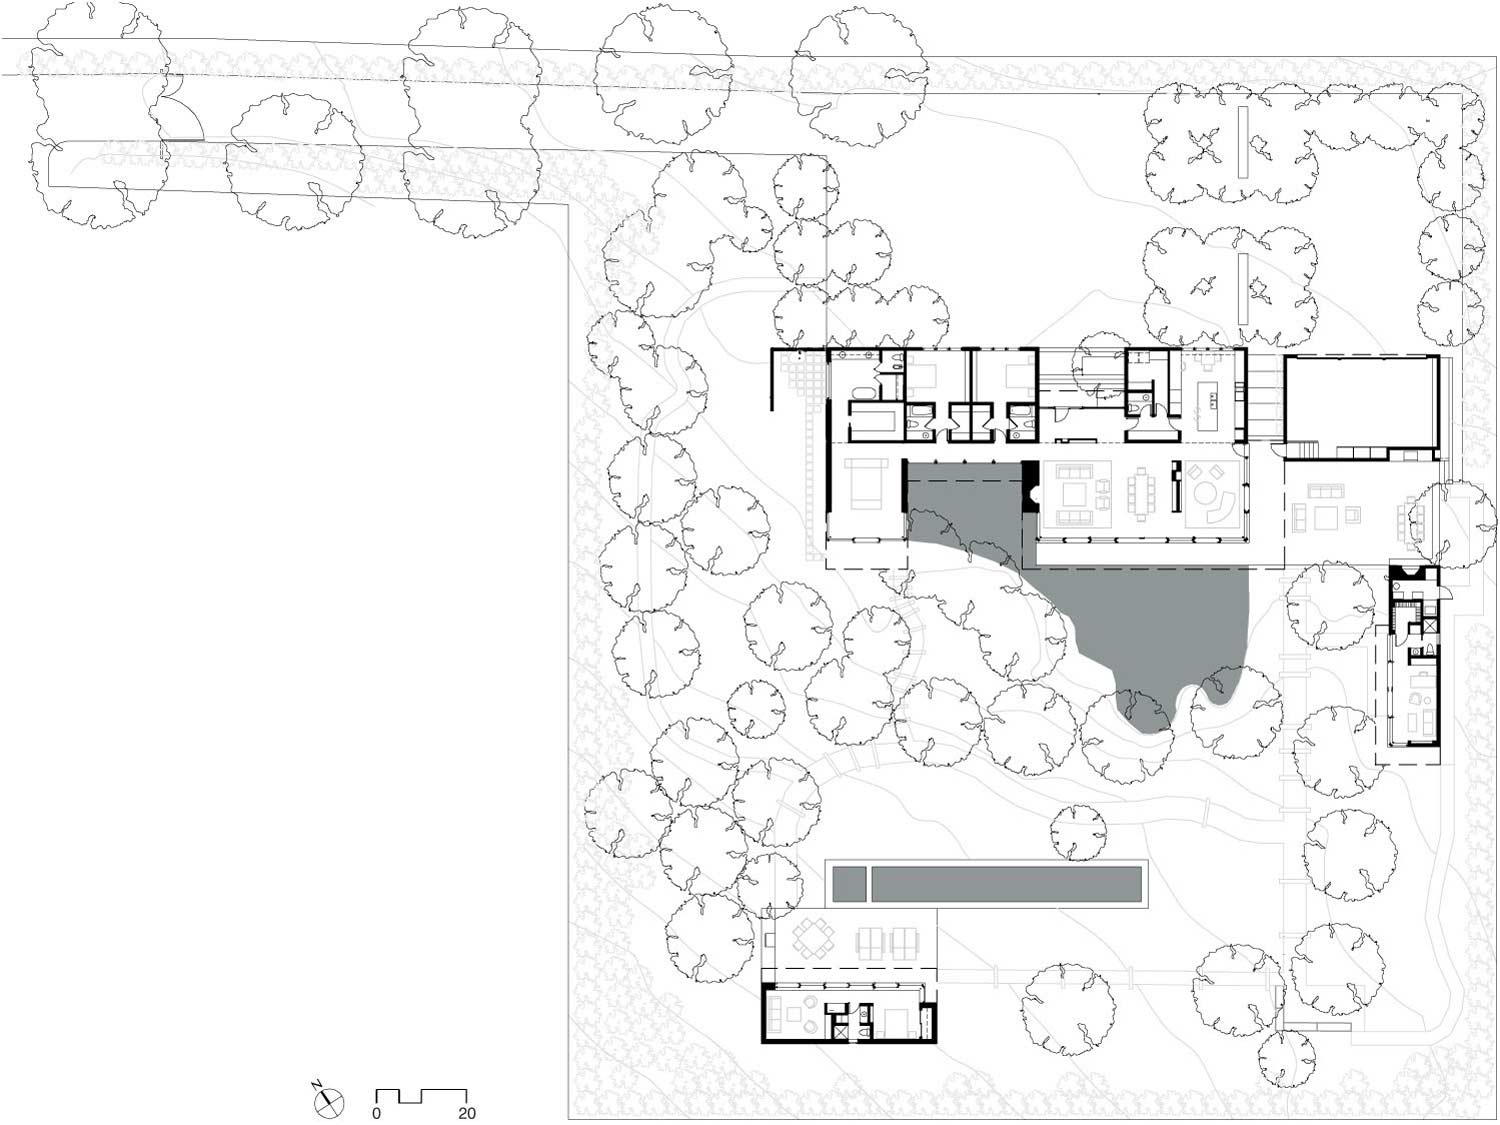 Floor Plan, Sustainable Retreat by the Pond in Atherton, California